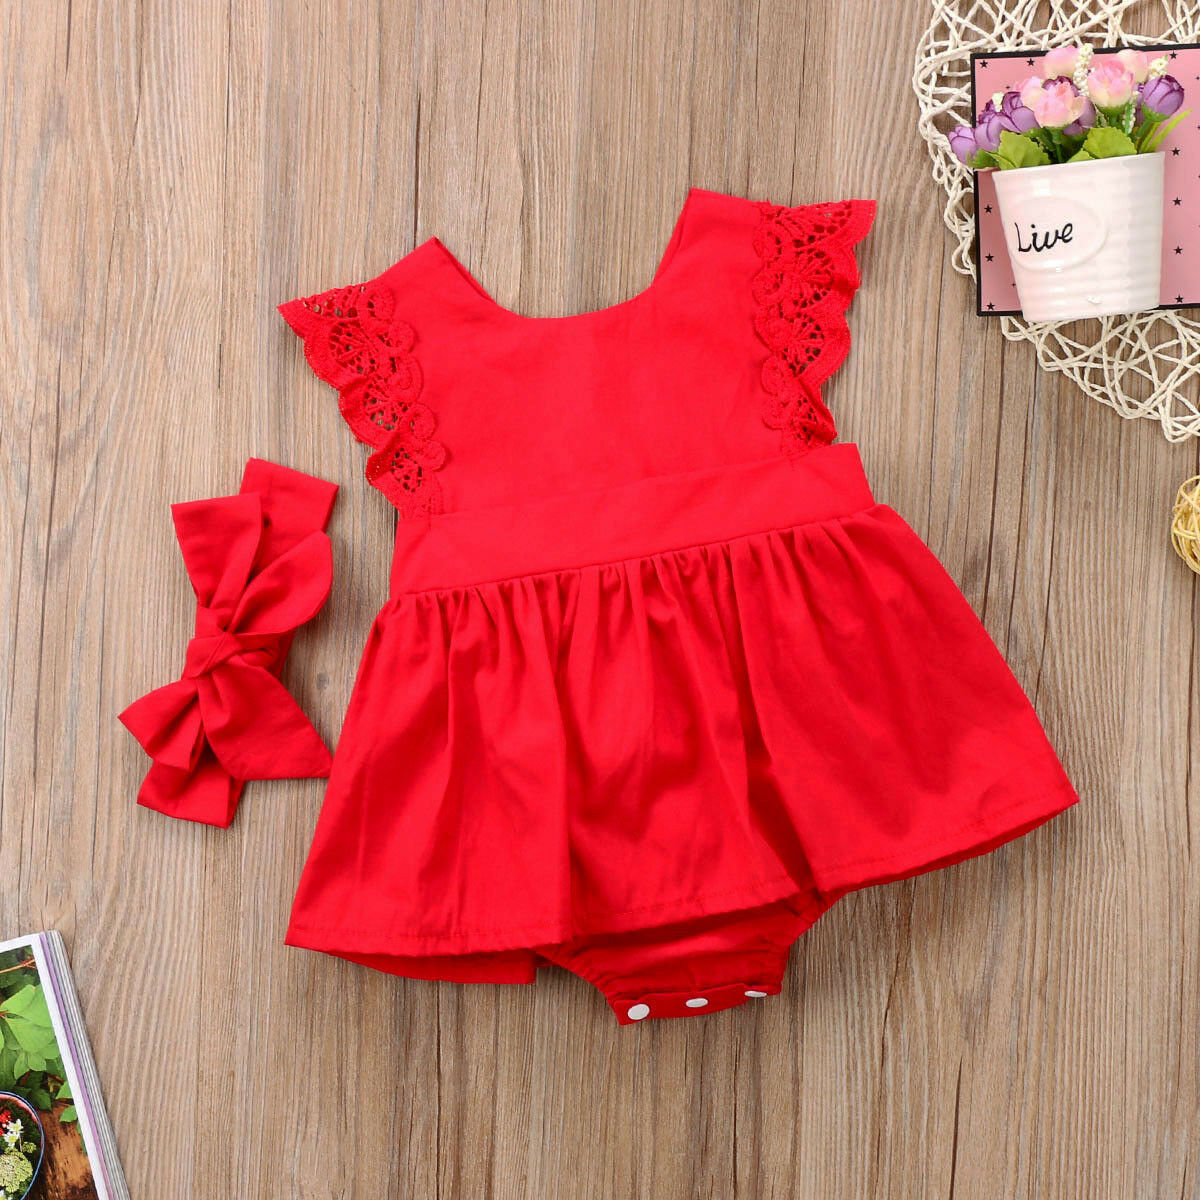 Pudcoco Newbron Christmas Ruffle Red Lace Romper Dress Baby Girls Sister Princess Kids Xmas Cotton Soft Party Dresses For 0-24M